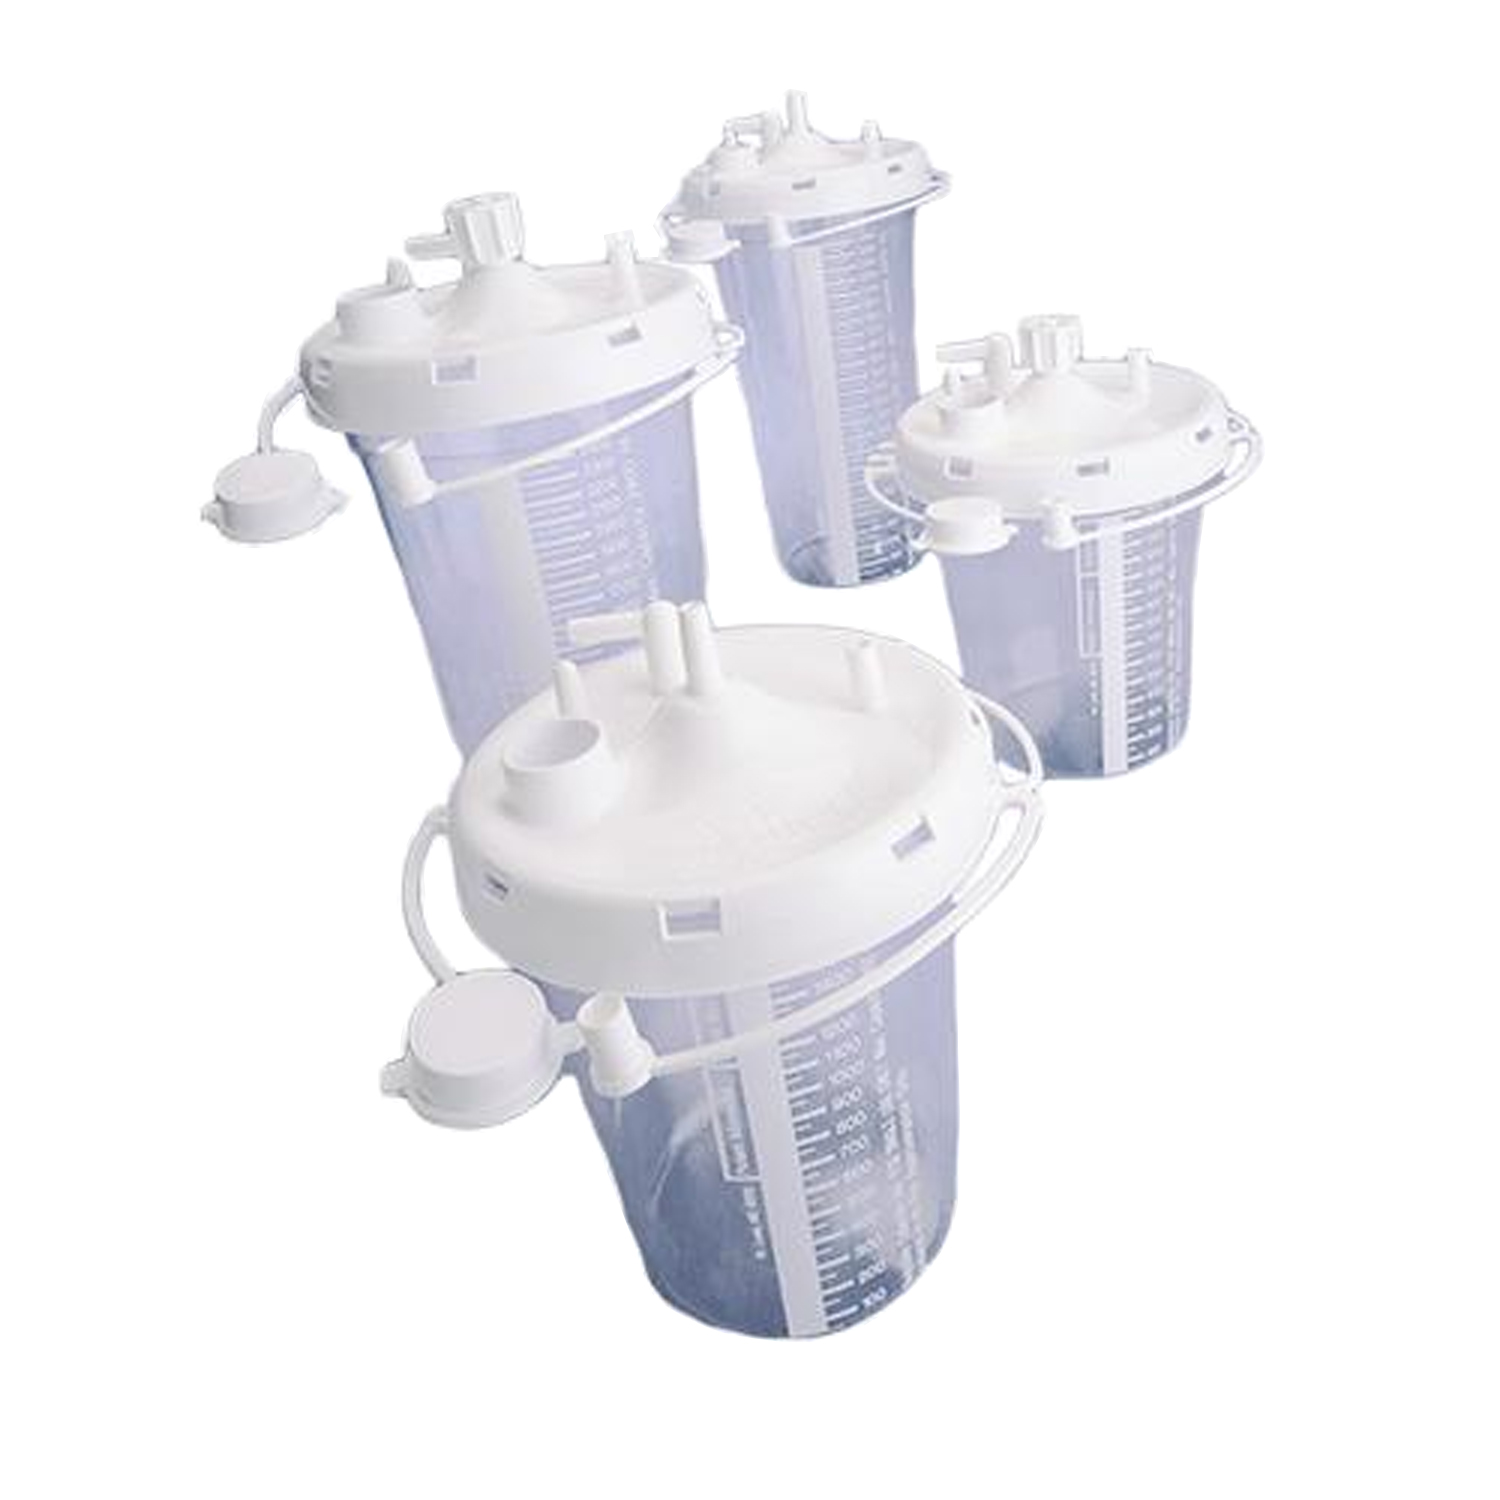 Disposable Collection Canisters